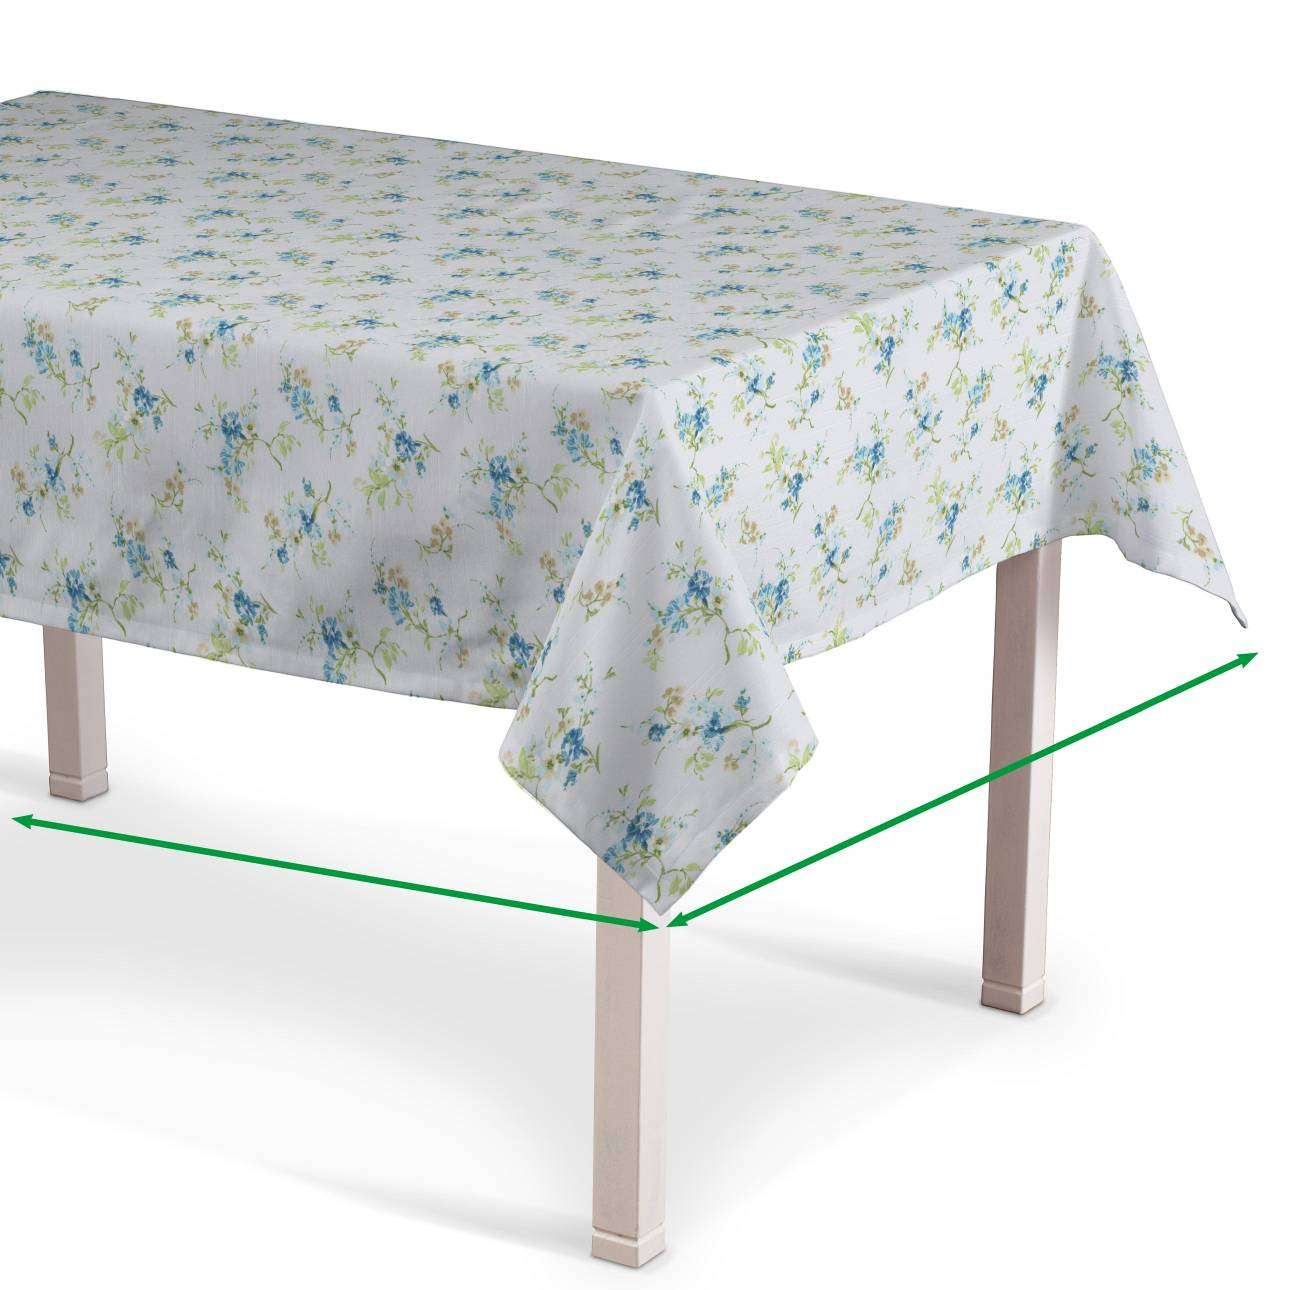 Rectangular tablecloth in collection Mirella, fabric: 141-16